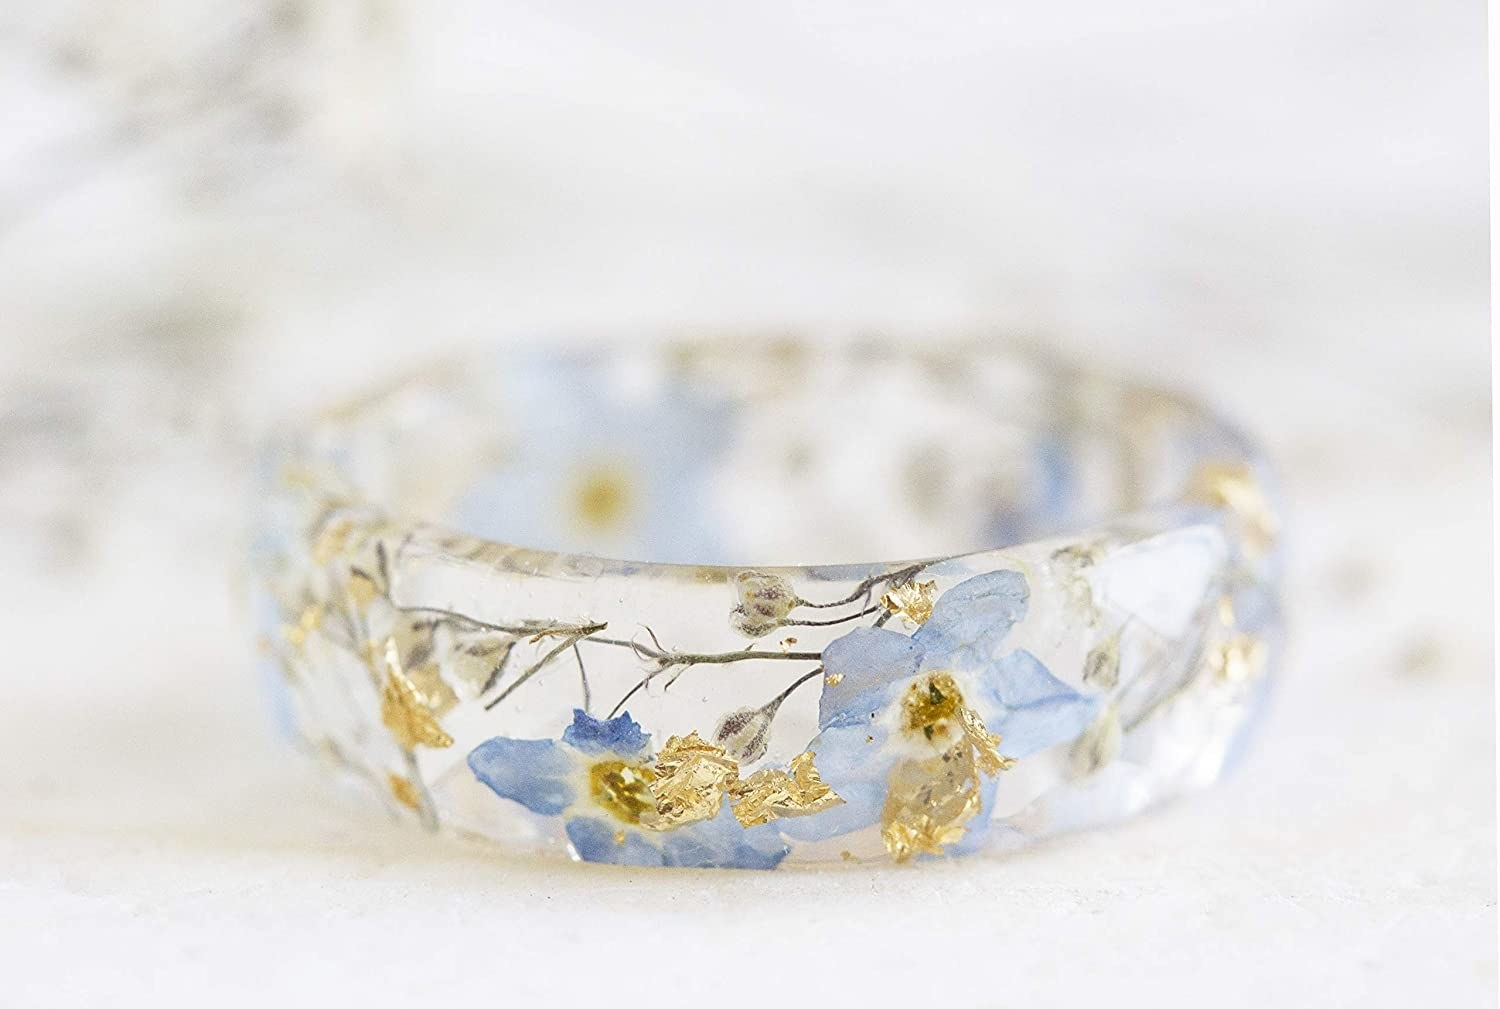 The clear faceted band with blue forget me nots and gold flake inside